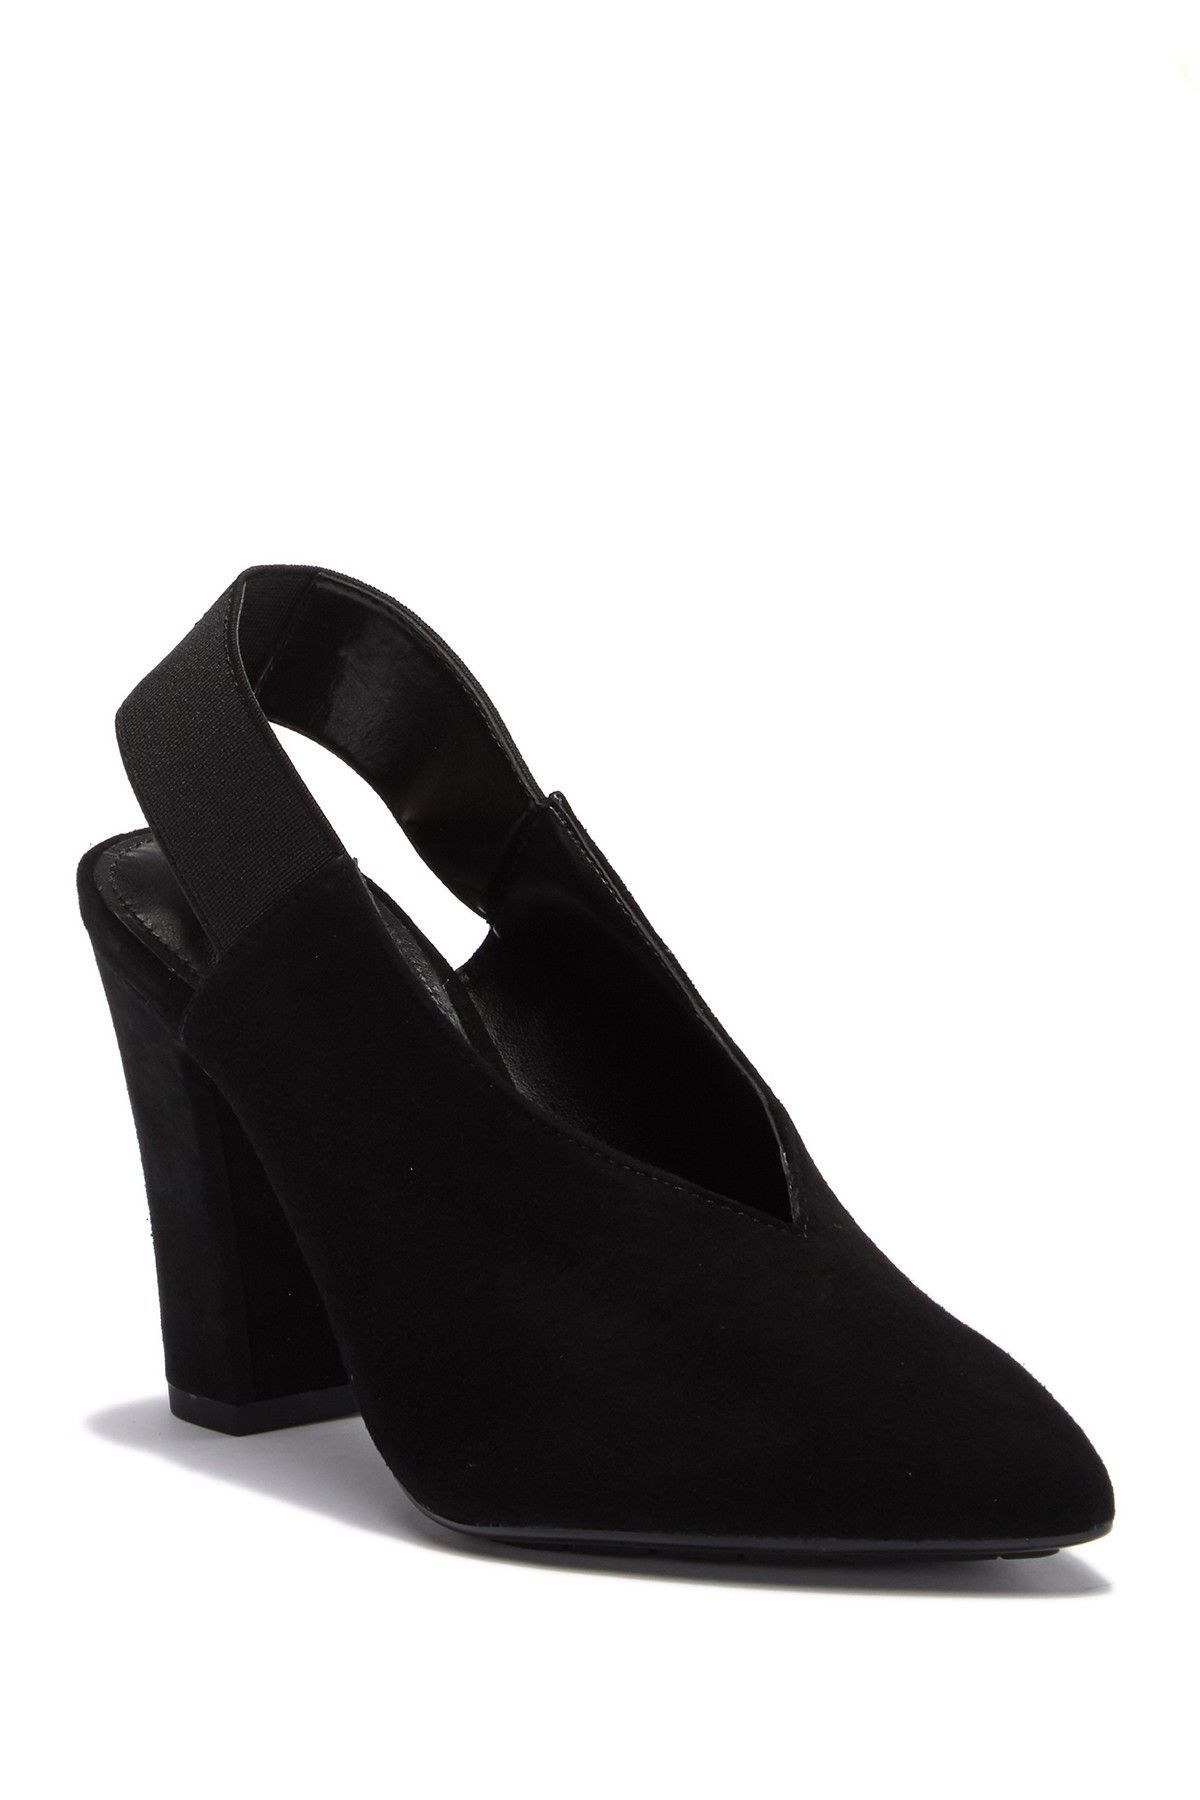 c0fda0e5309 Donald Pliner - Henia Suede Block Heel Slingback Pump is now 43% off. Free  Shipping on orders over  100.